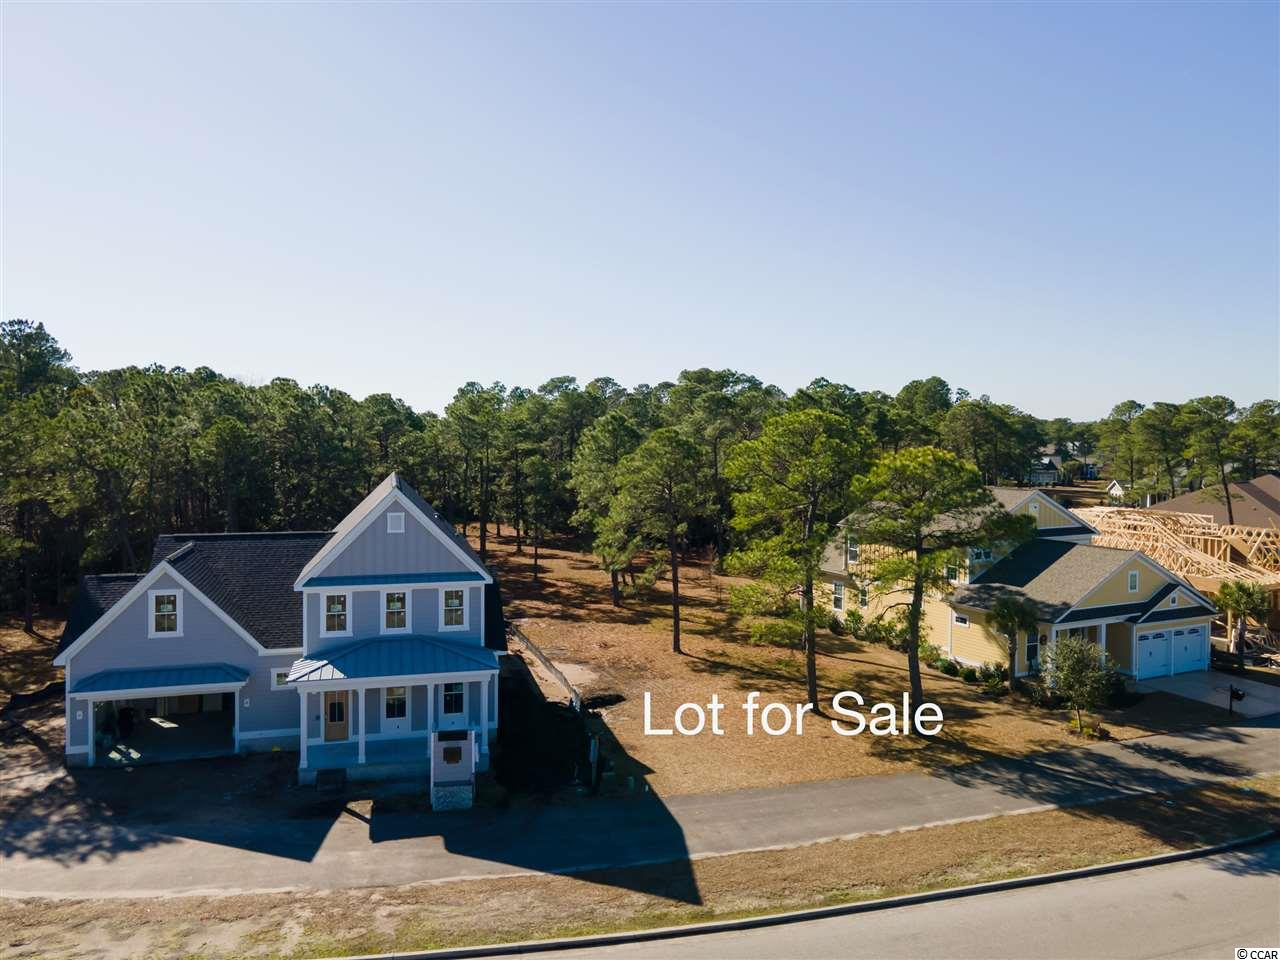 LOWEST priced lot in the highly sought after Waterbridge community in Carolina Forest. Buy now with no timeframe to build your dream home. Waterbridge has one of the best resort like amenities center around with large pools, fitness center, basketball courts, swim up refreshment bar, volleyball court and more!. The community also has a onsite storage area for boats and Rvs. Book your showing today as you will not be disappointed!.